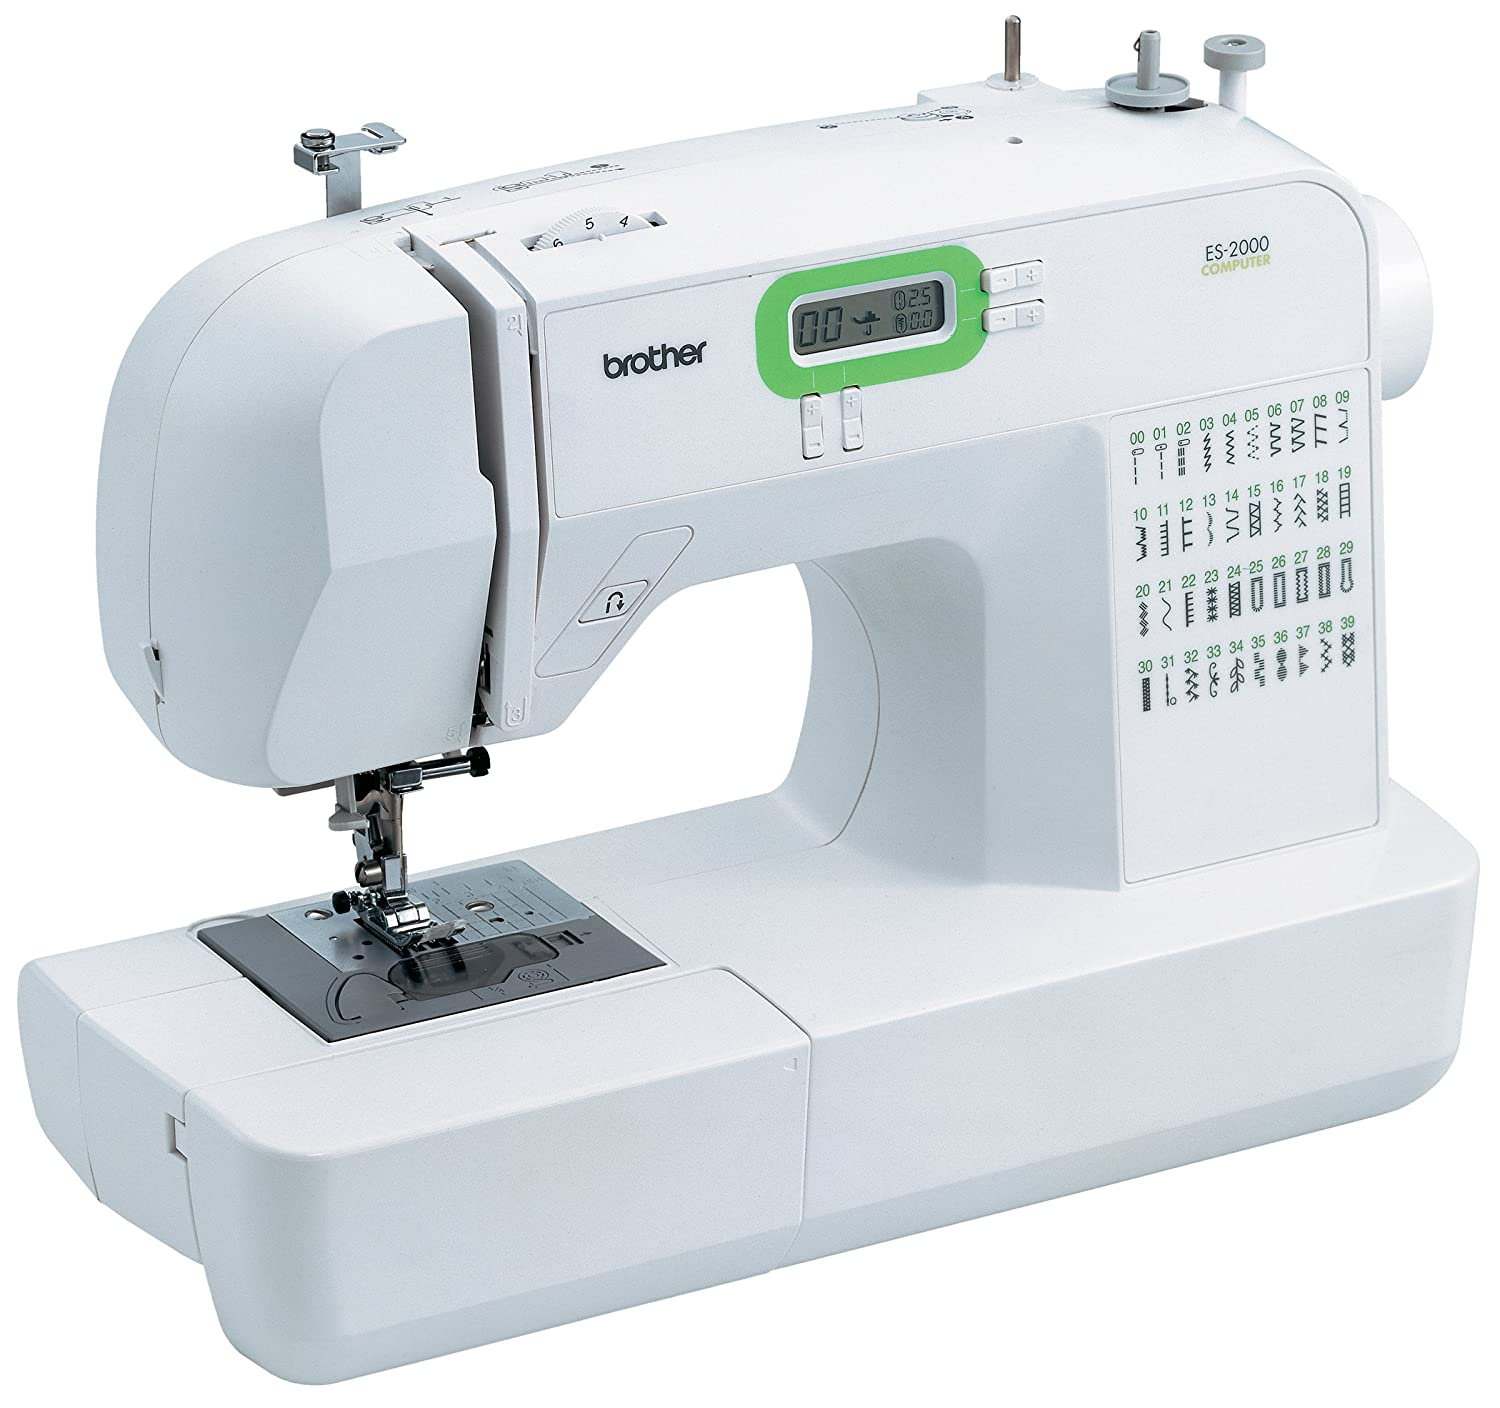 Screaming mimi s sewing room machines for beginners